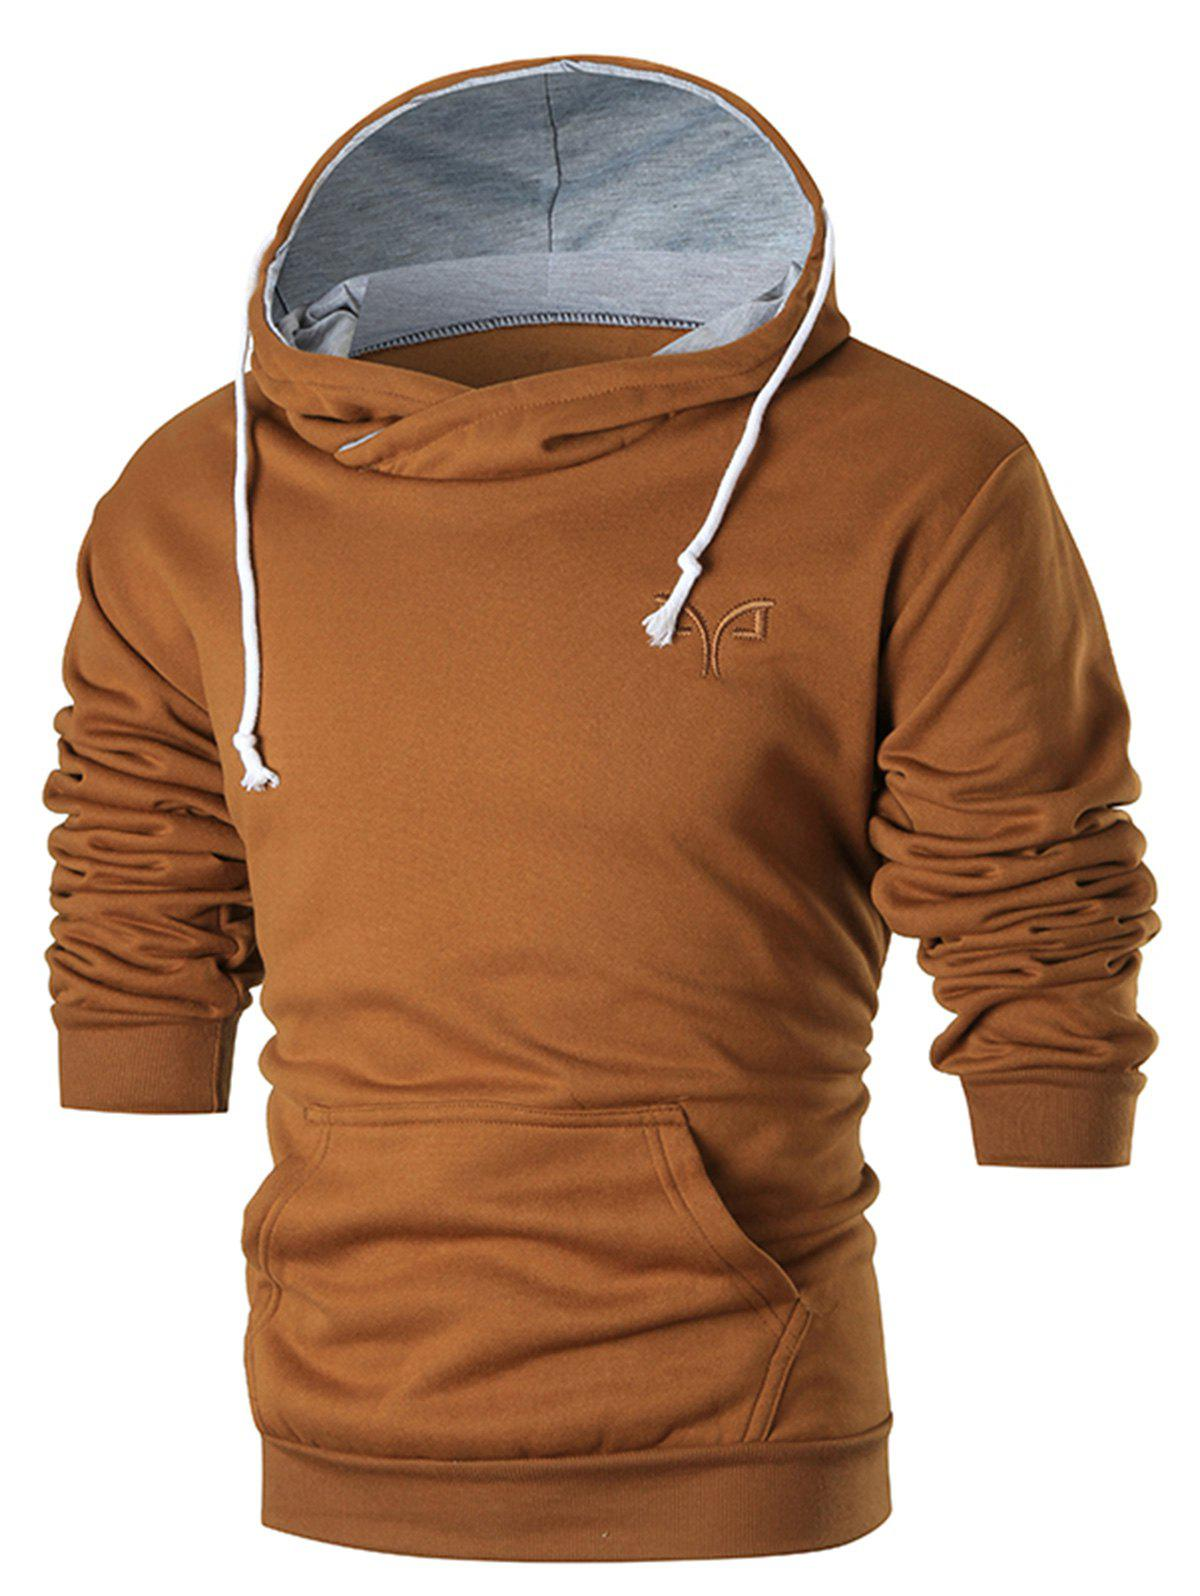 Chest Embroidered Warm Pullover HoodieMEN<br><br>Size: XL; Color: BROWN; Material: Cotton,Polyester; Clothes Type: Hoodie; Shirt Length: Regular; Sleeve Length: Full; Style: Casual; Patterns: Solid; Thickness: Thick; Occasion: Casual,Daily Use,Going Out; Weight: 0.4100kg; Package Contents: 1 x Hoodie;